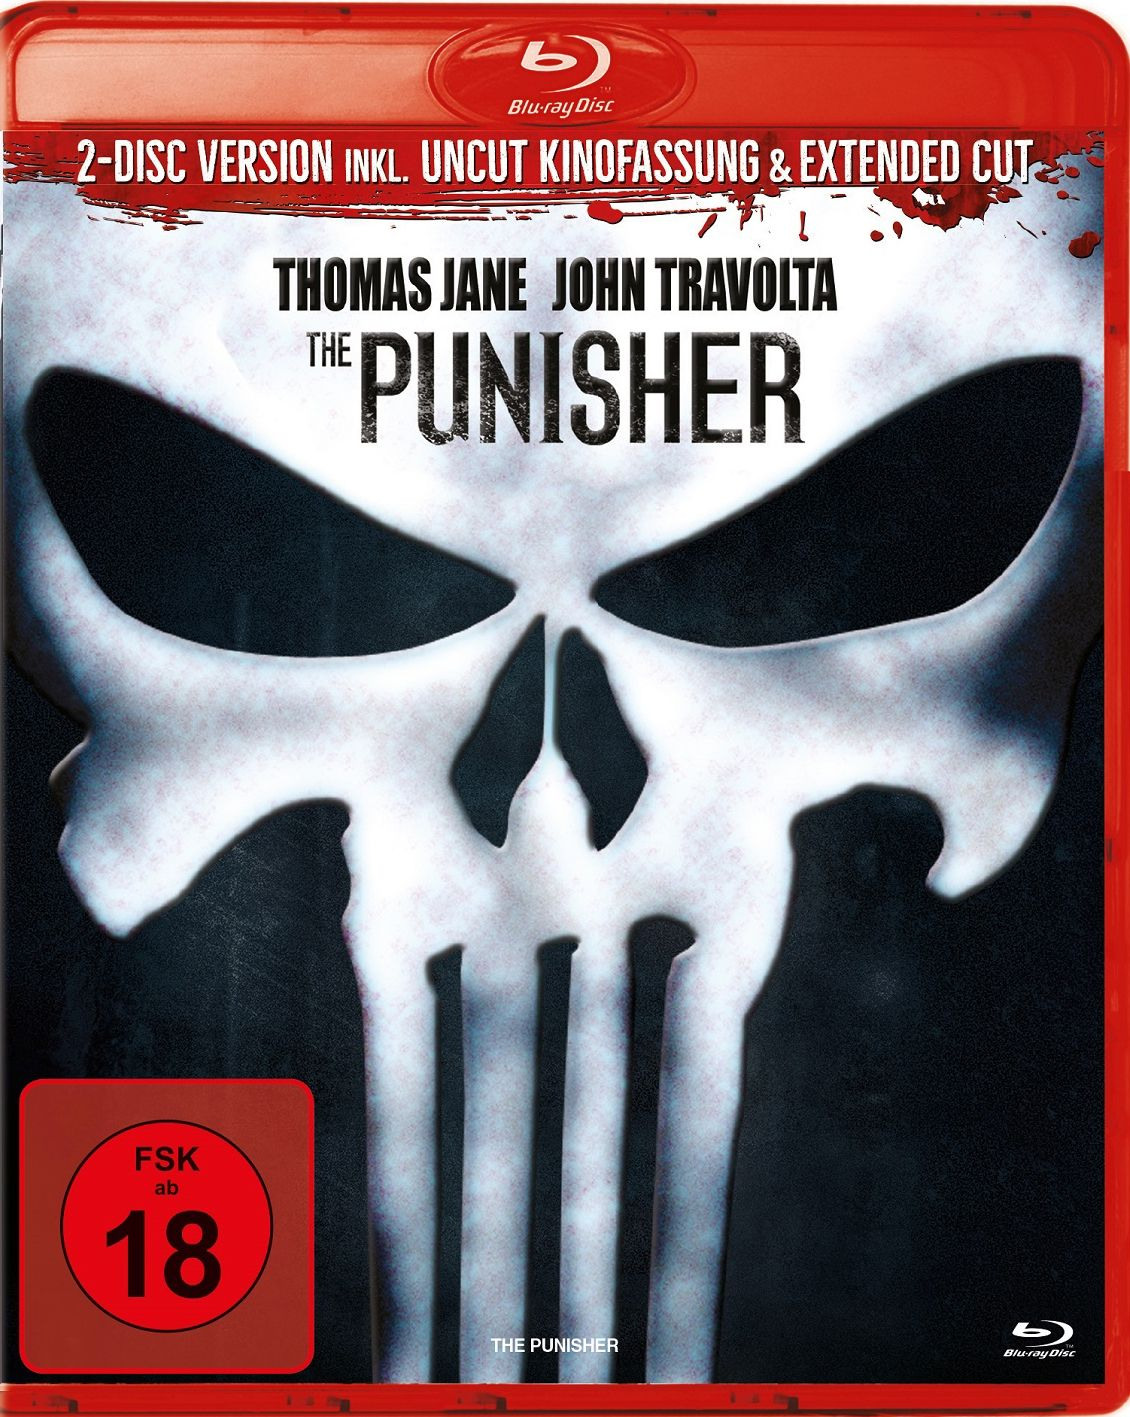 Punisher, The (2004) (Uncut Kinofassung + Extended Cut) (2 Discs) (BLURAY)